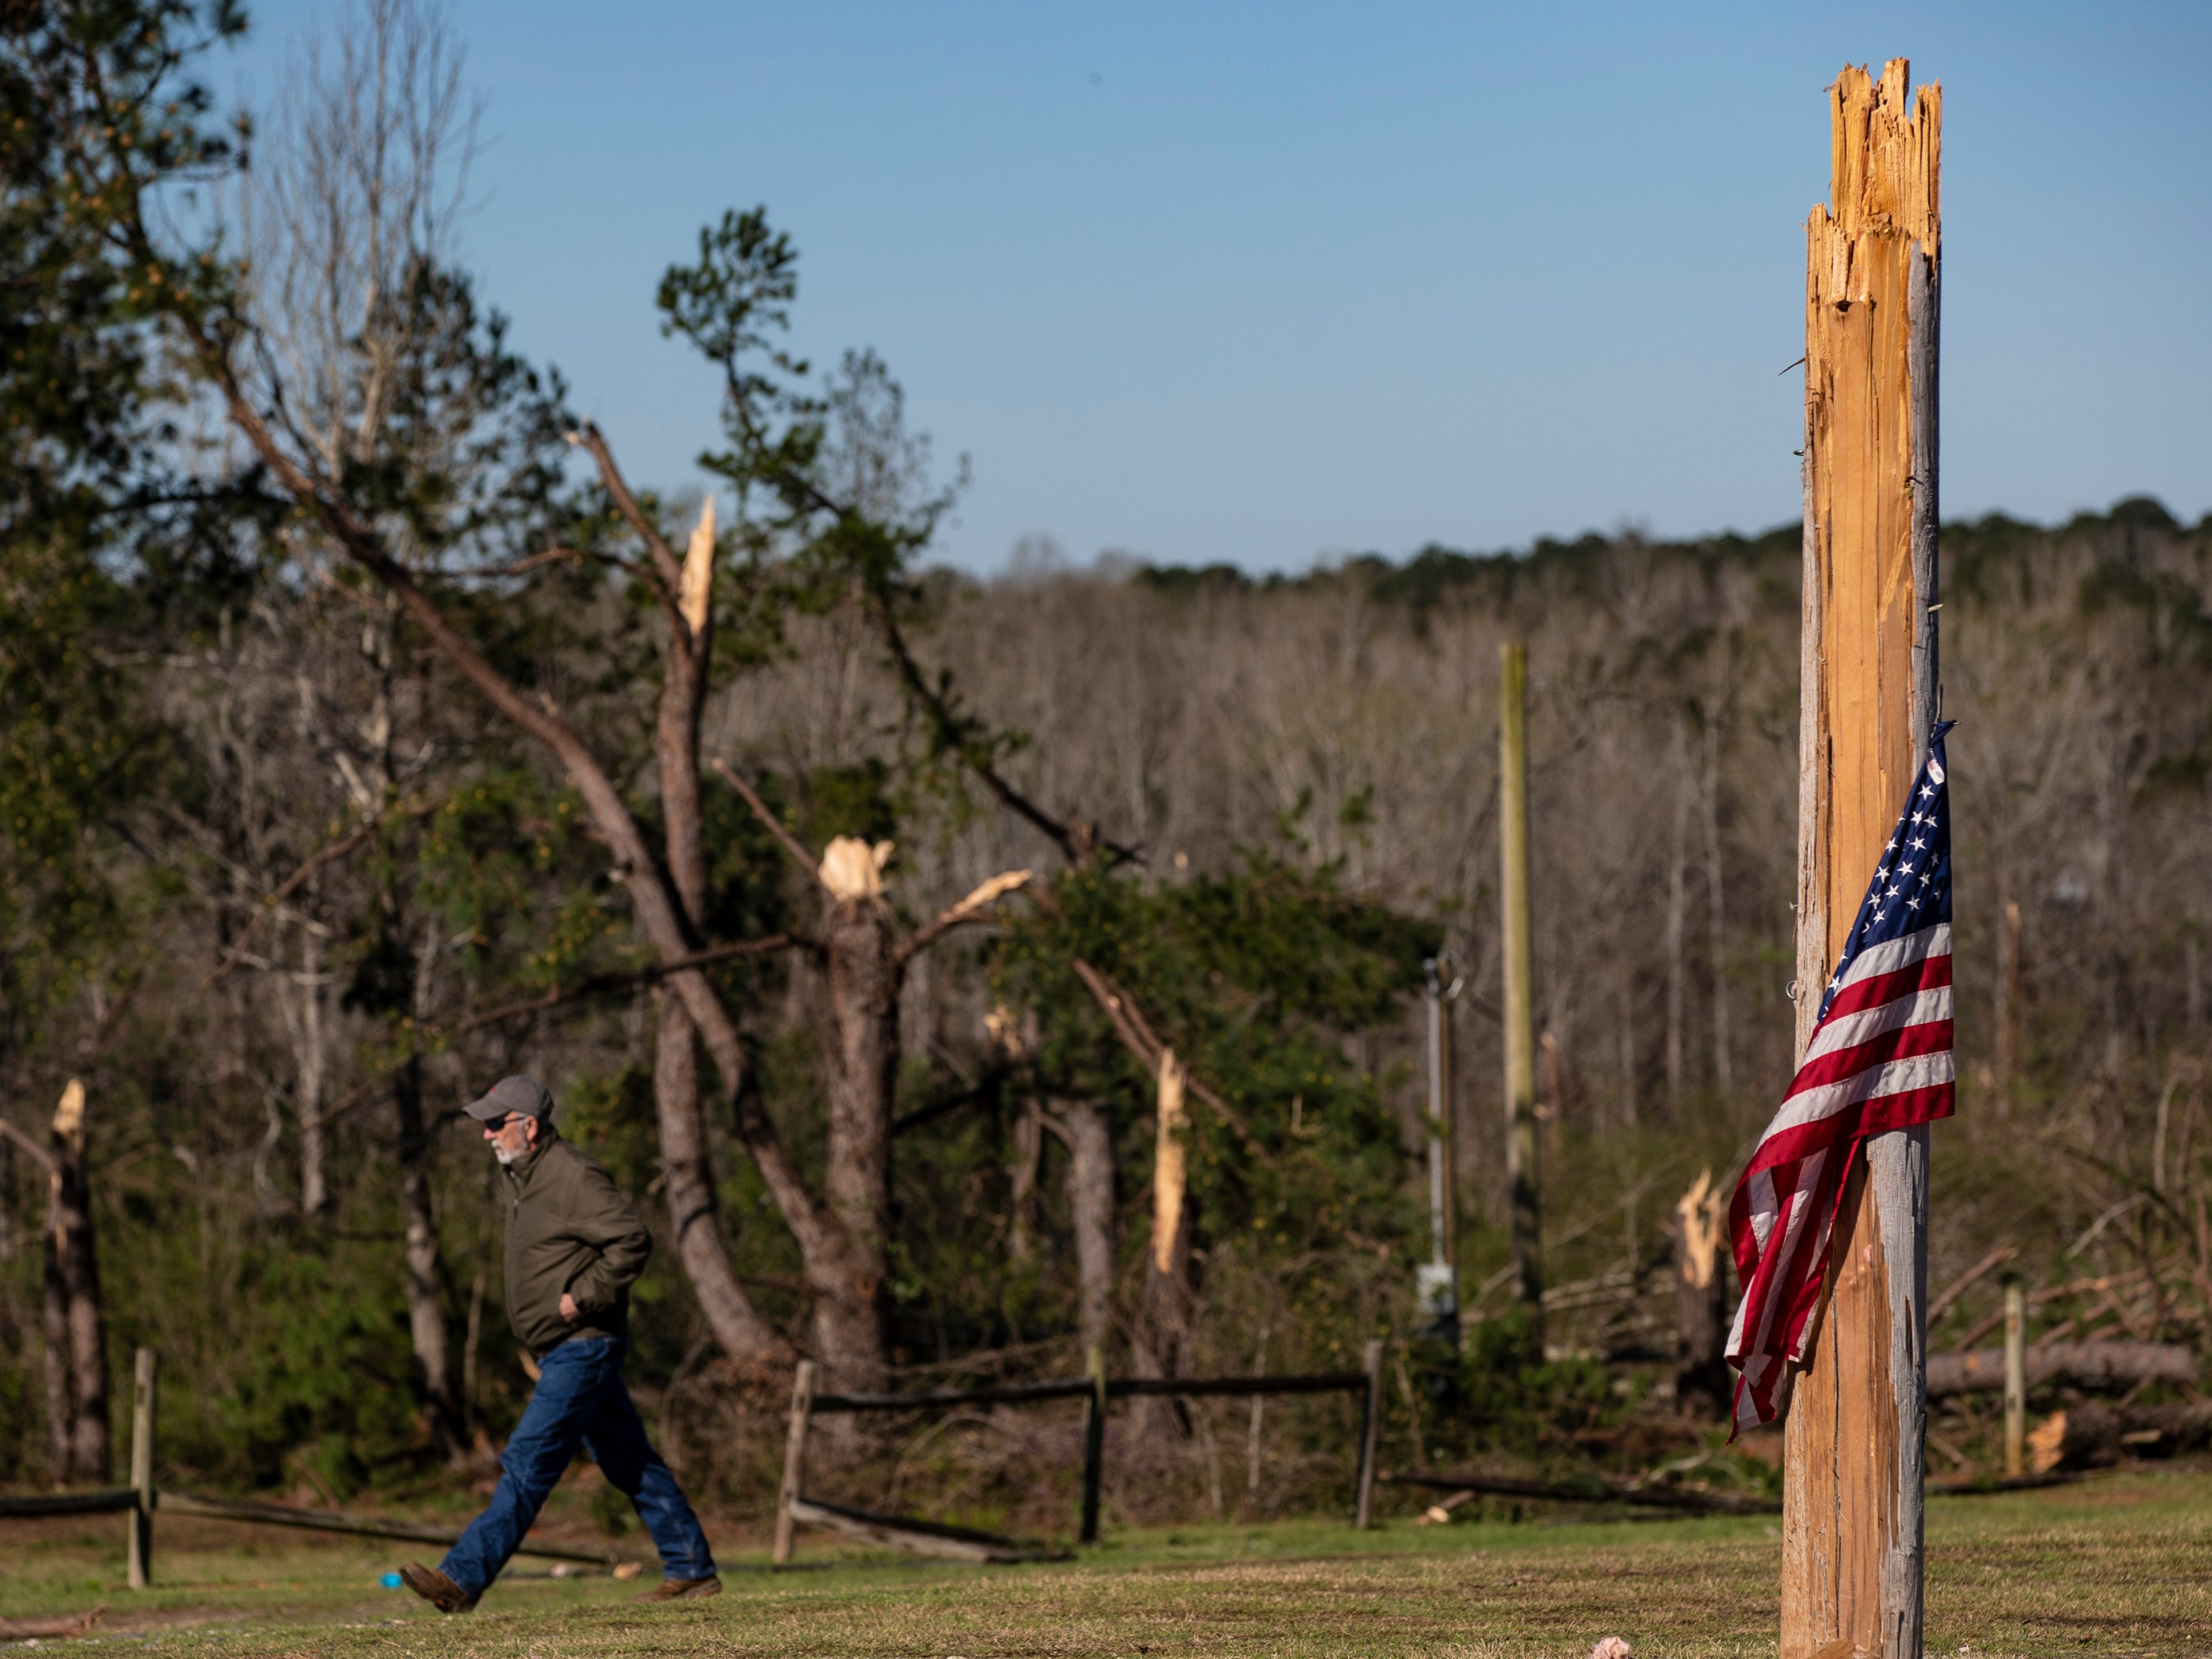 An american flag blows against a broken utility pole in Smiths Station, Ala. on March 5, 2019.